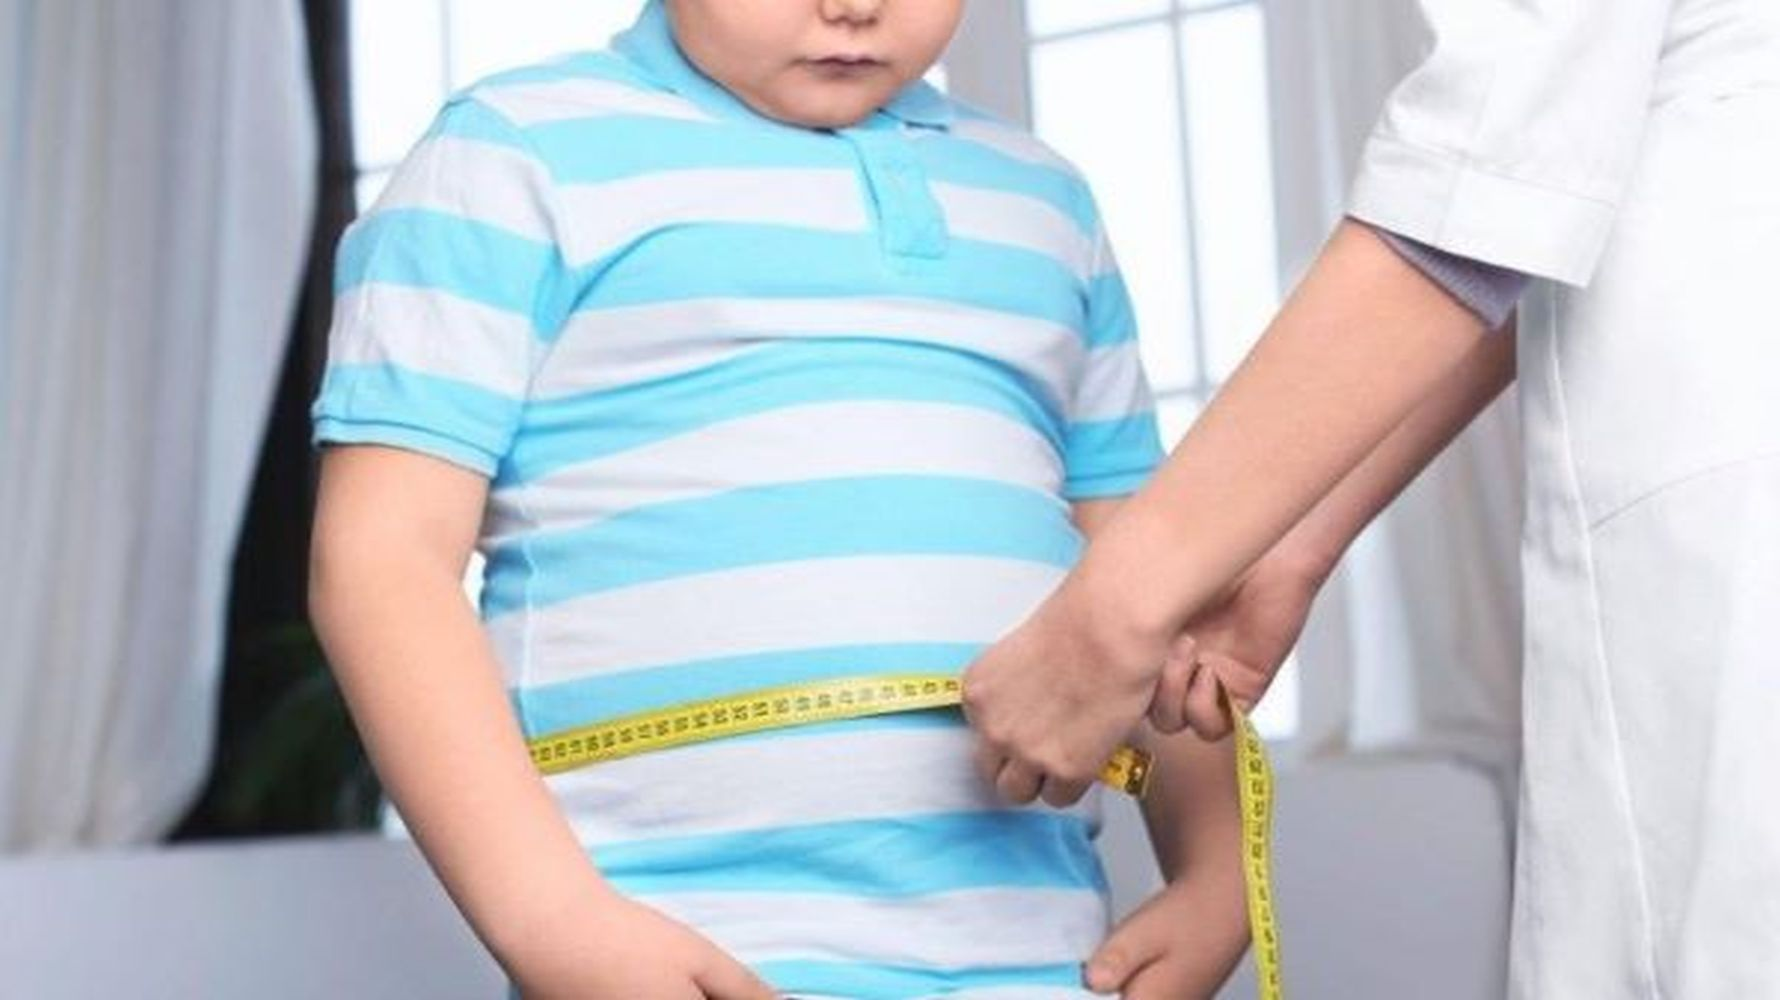 Is it possible to prevent childhood obesity?